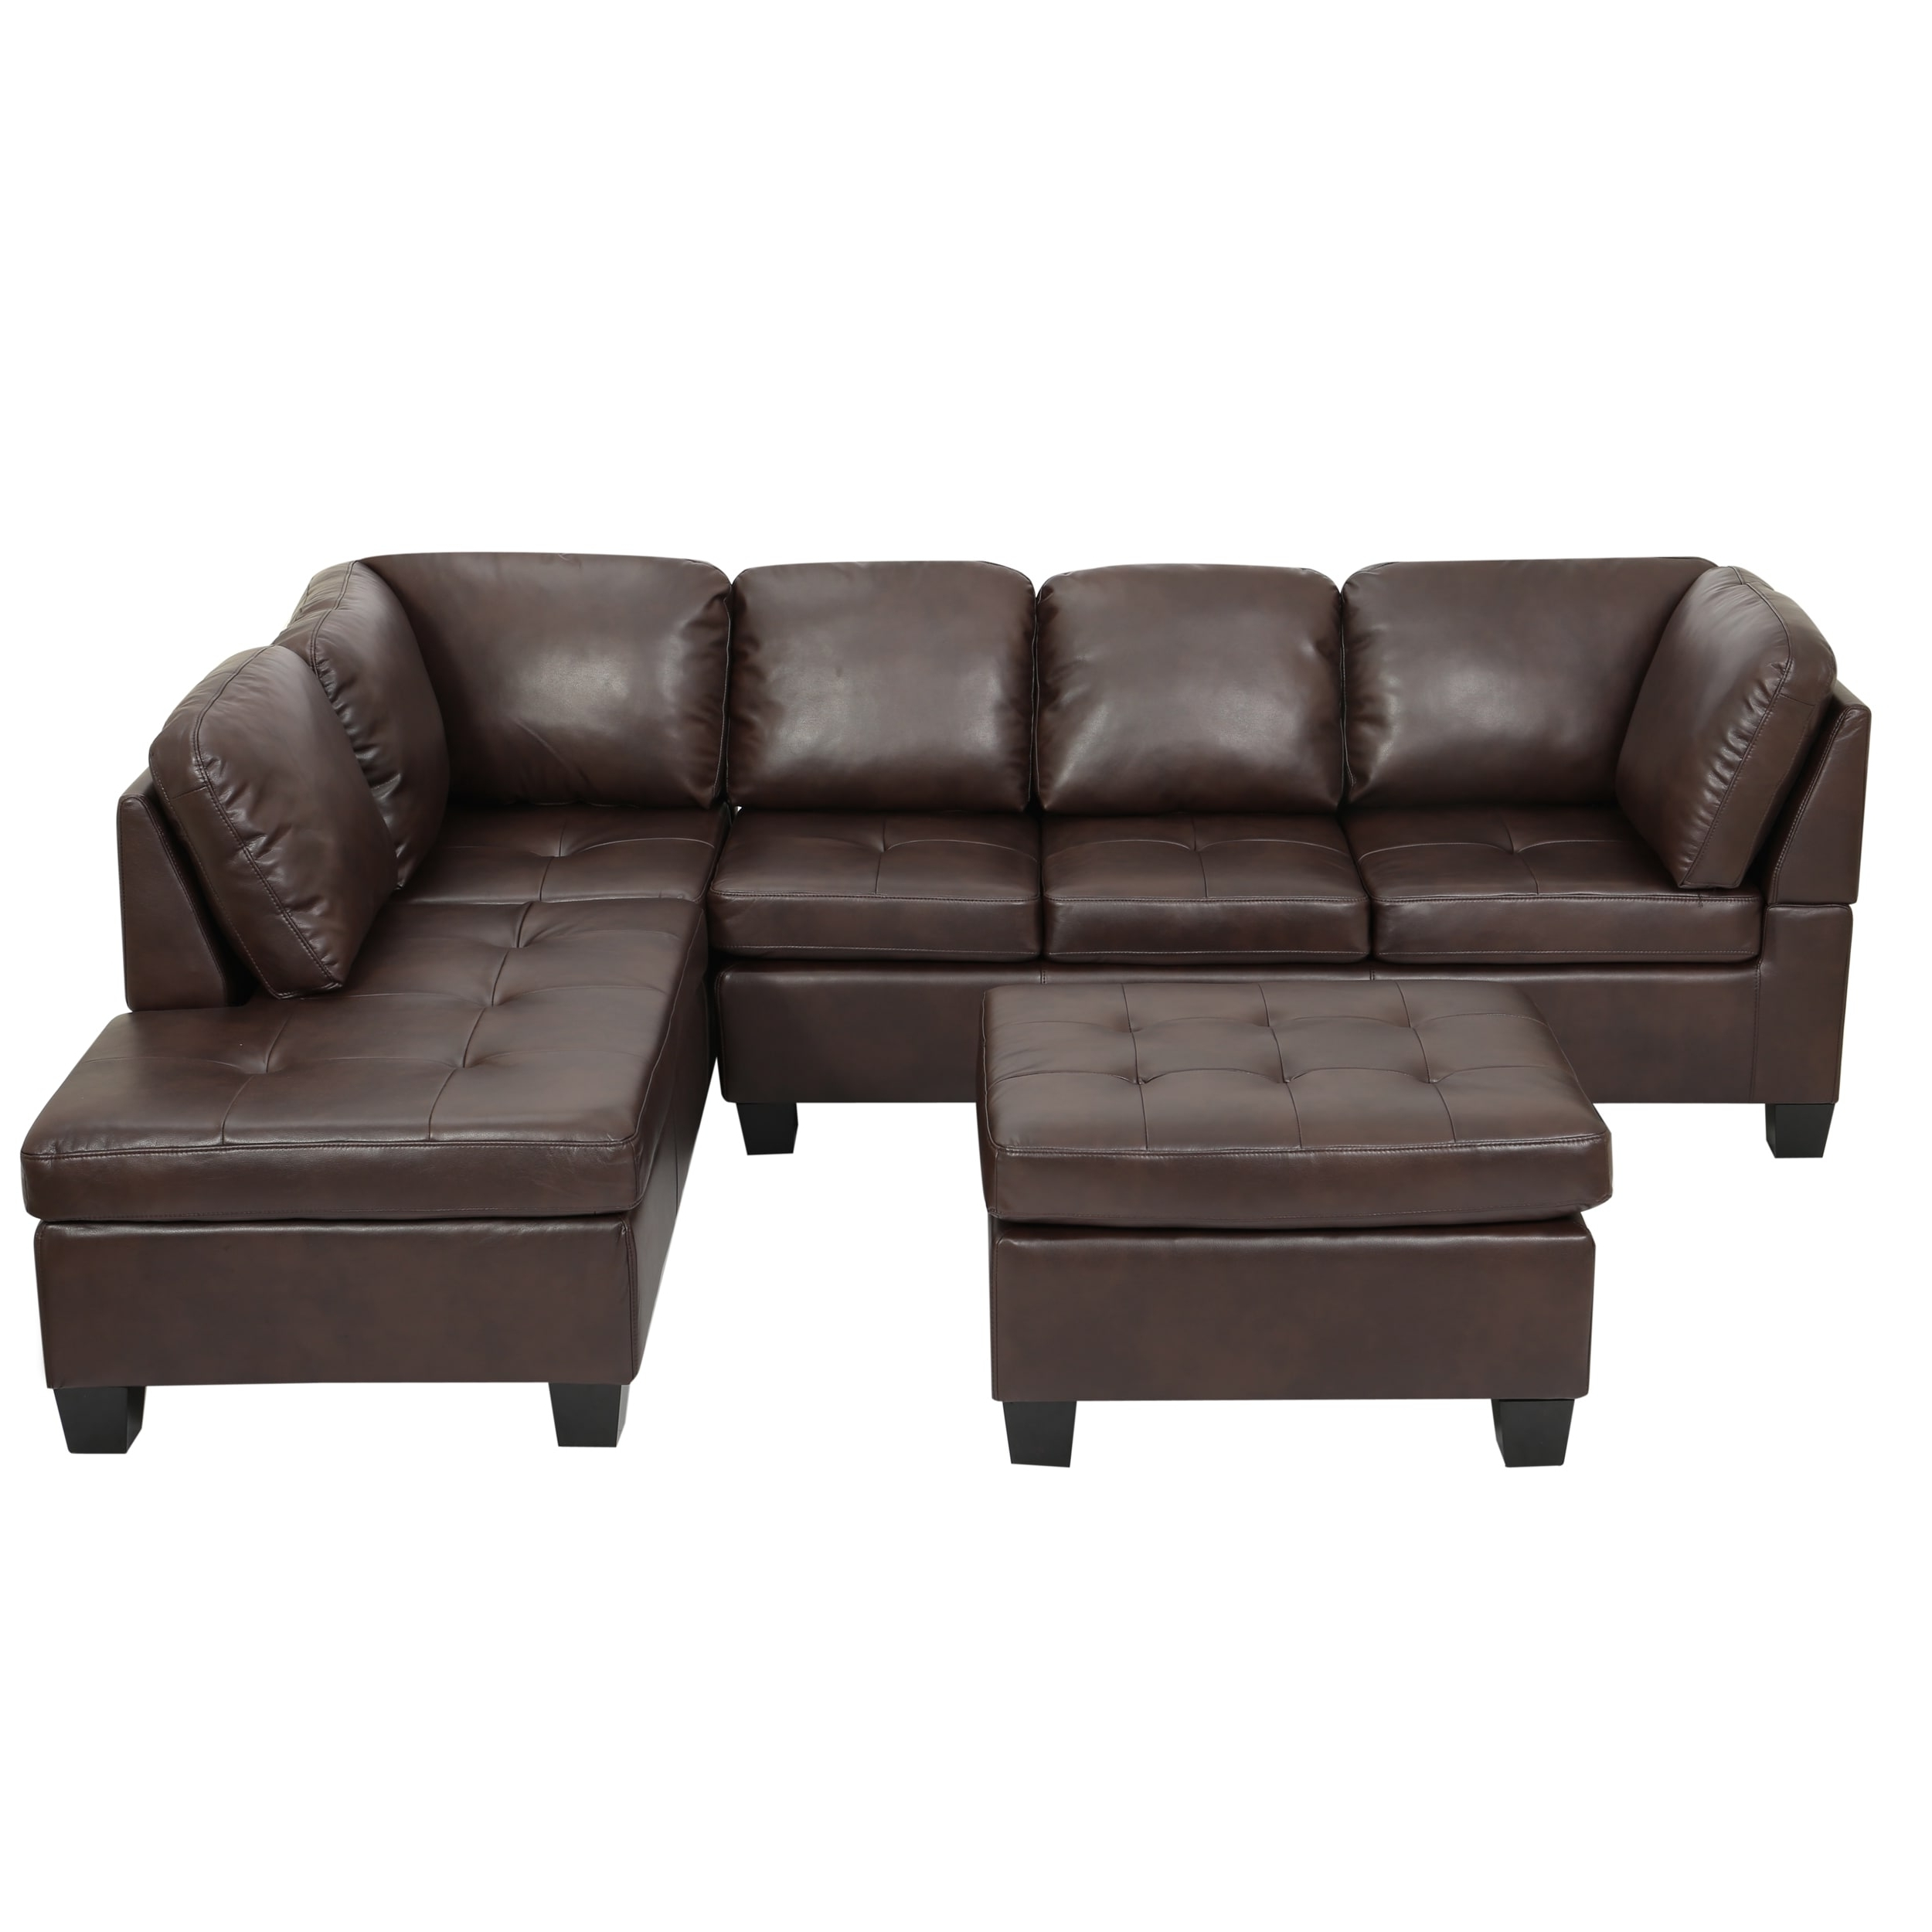 Best And Newest Canterbury 3 Piece Pu Leather Sectional Sofa Setchristopher Inside Canterbury Leather Sofas (View 4 of 20)